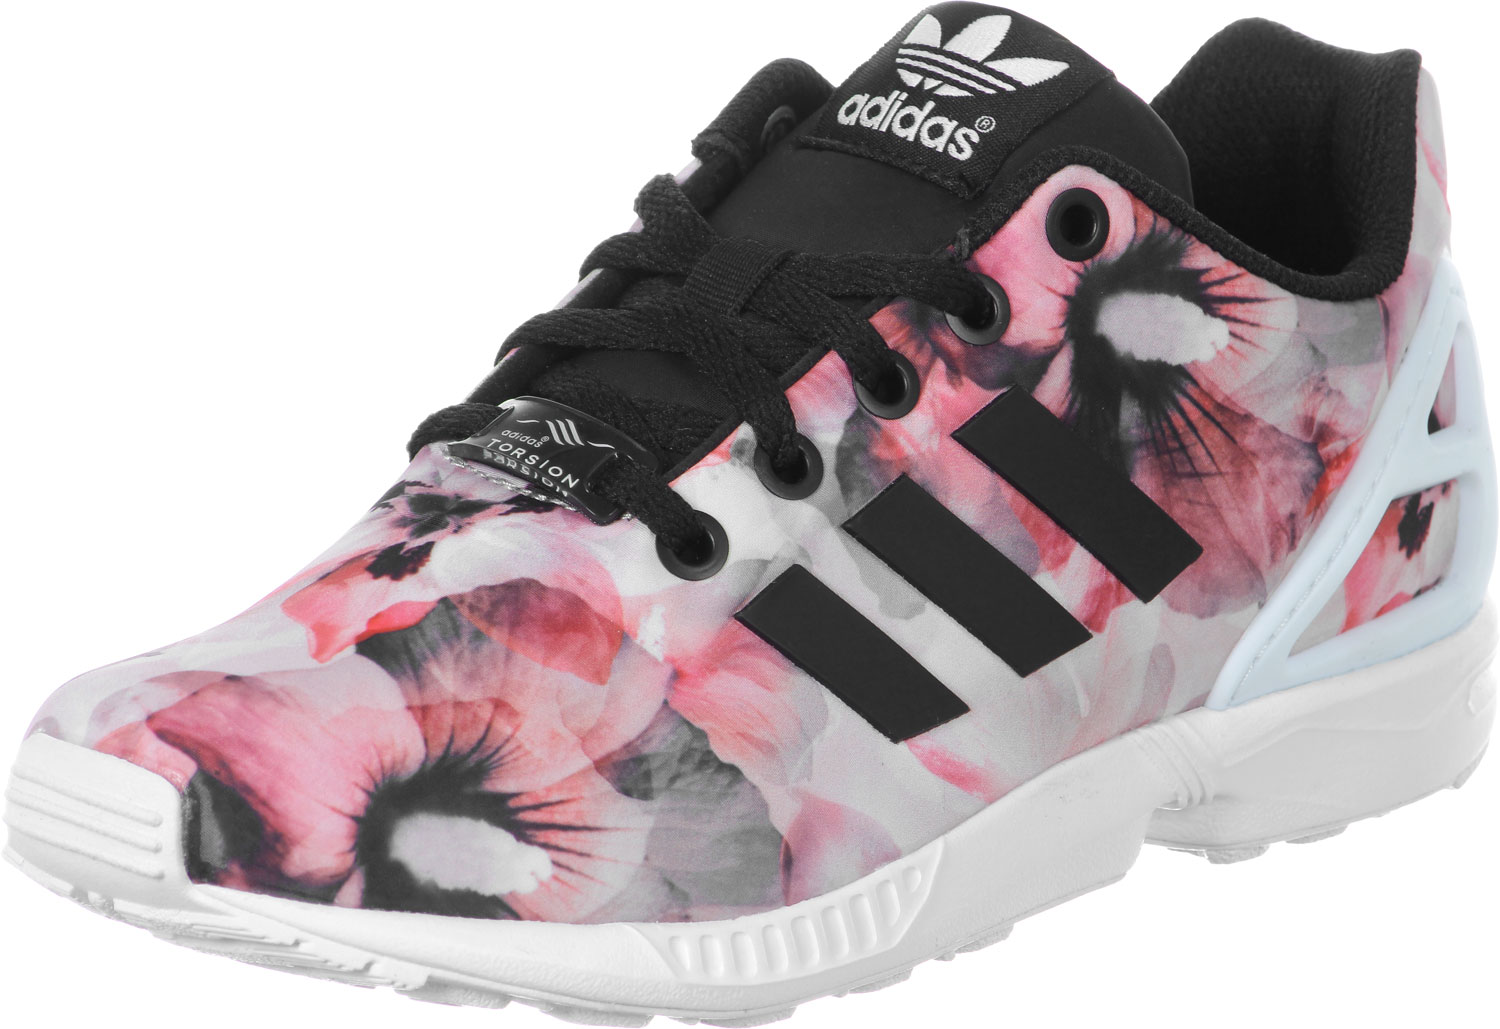 adidas zx flux floral rose,Soldes France Adidas Zx Flux